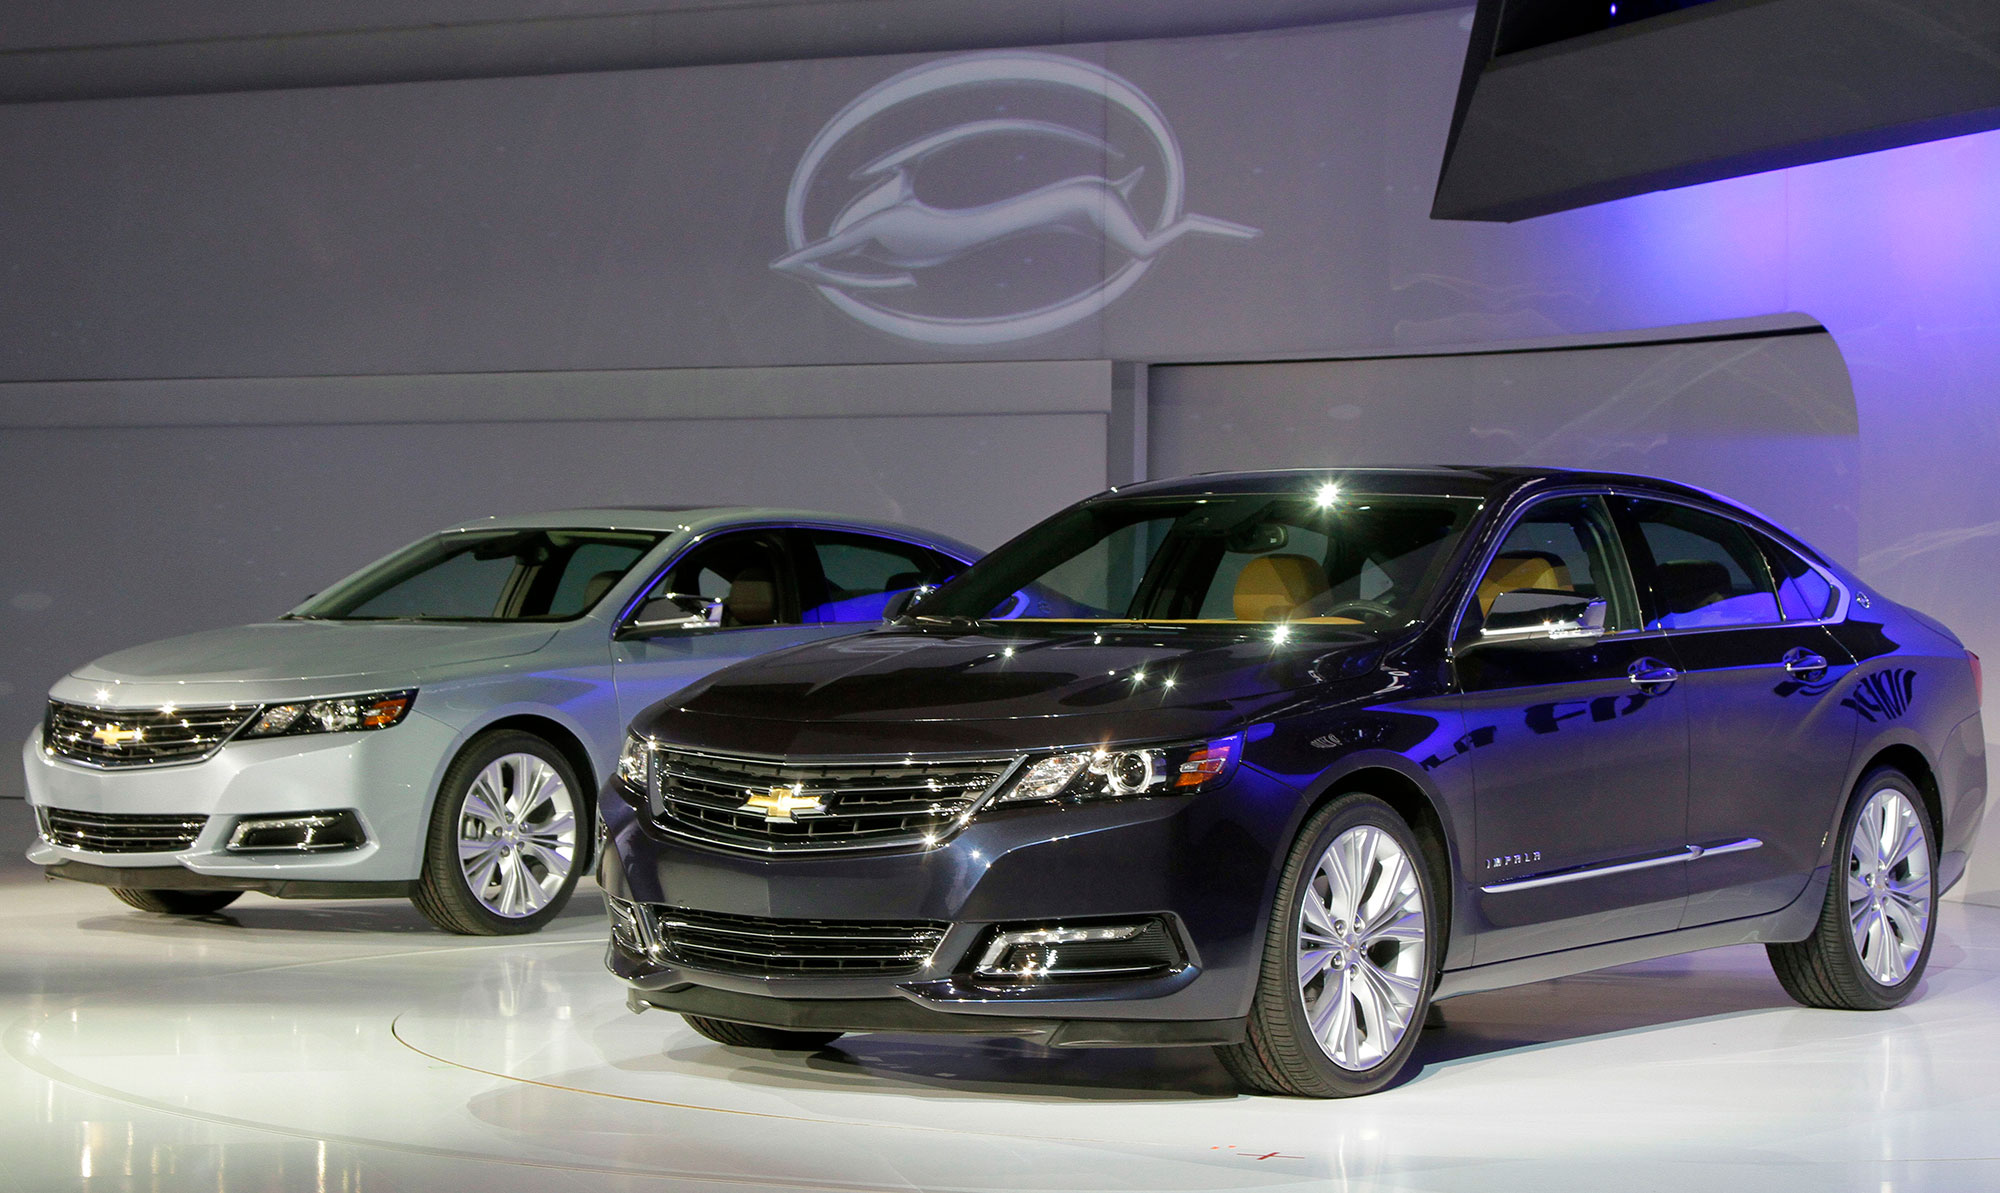 GM cuts: Here are the six cars that General Motors will stop